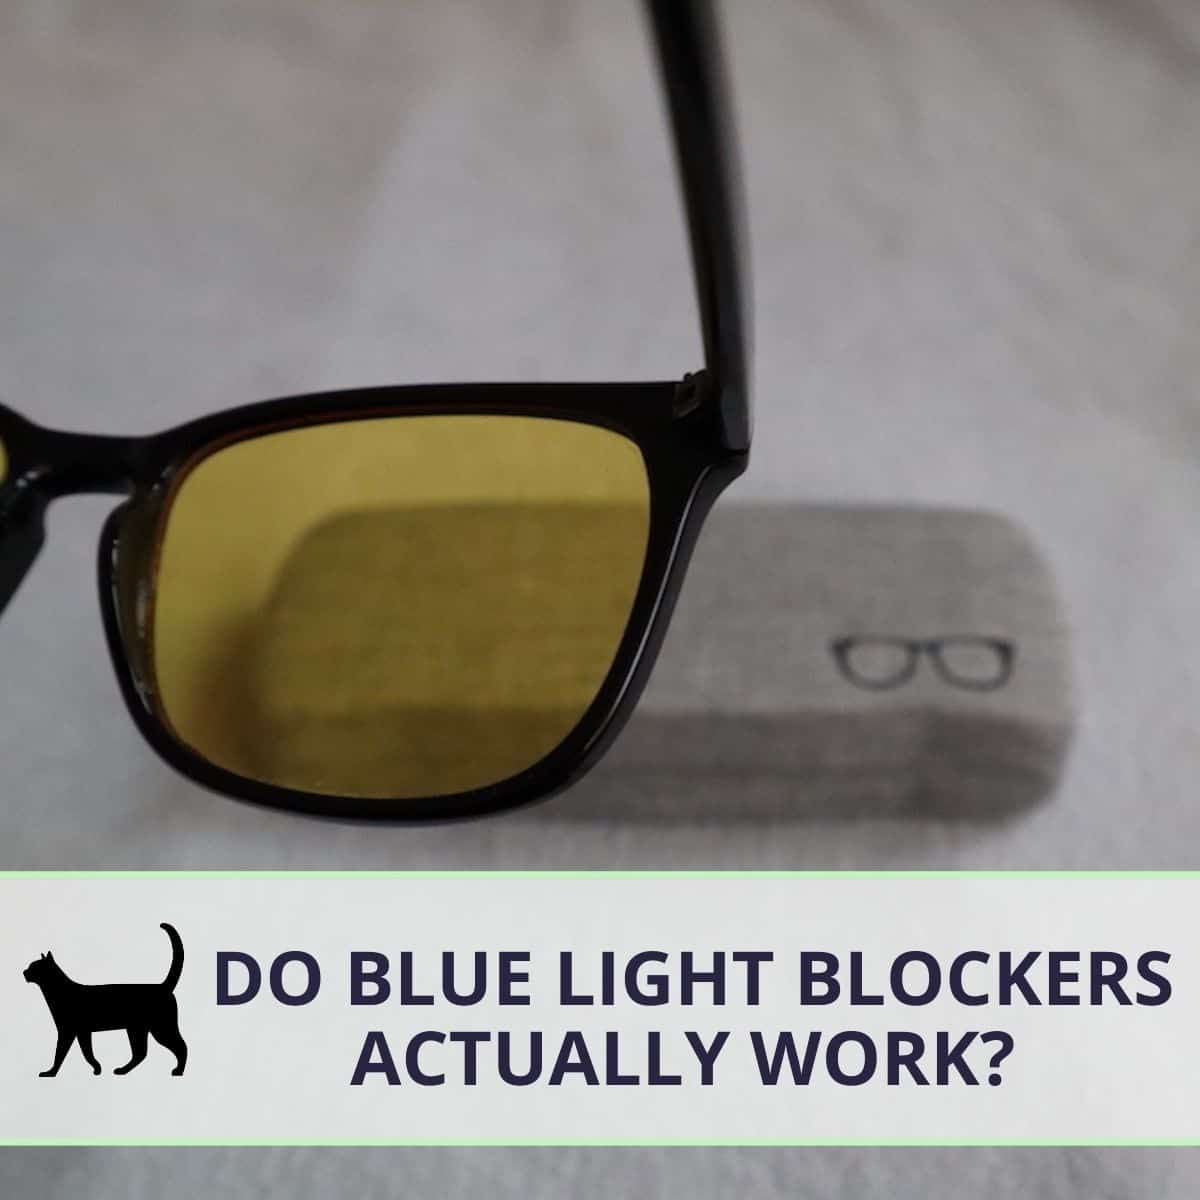 Do Blue light blockers work? Here are my test results!